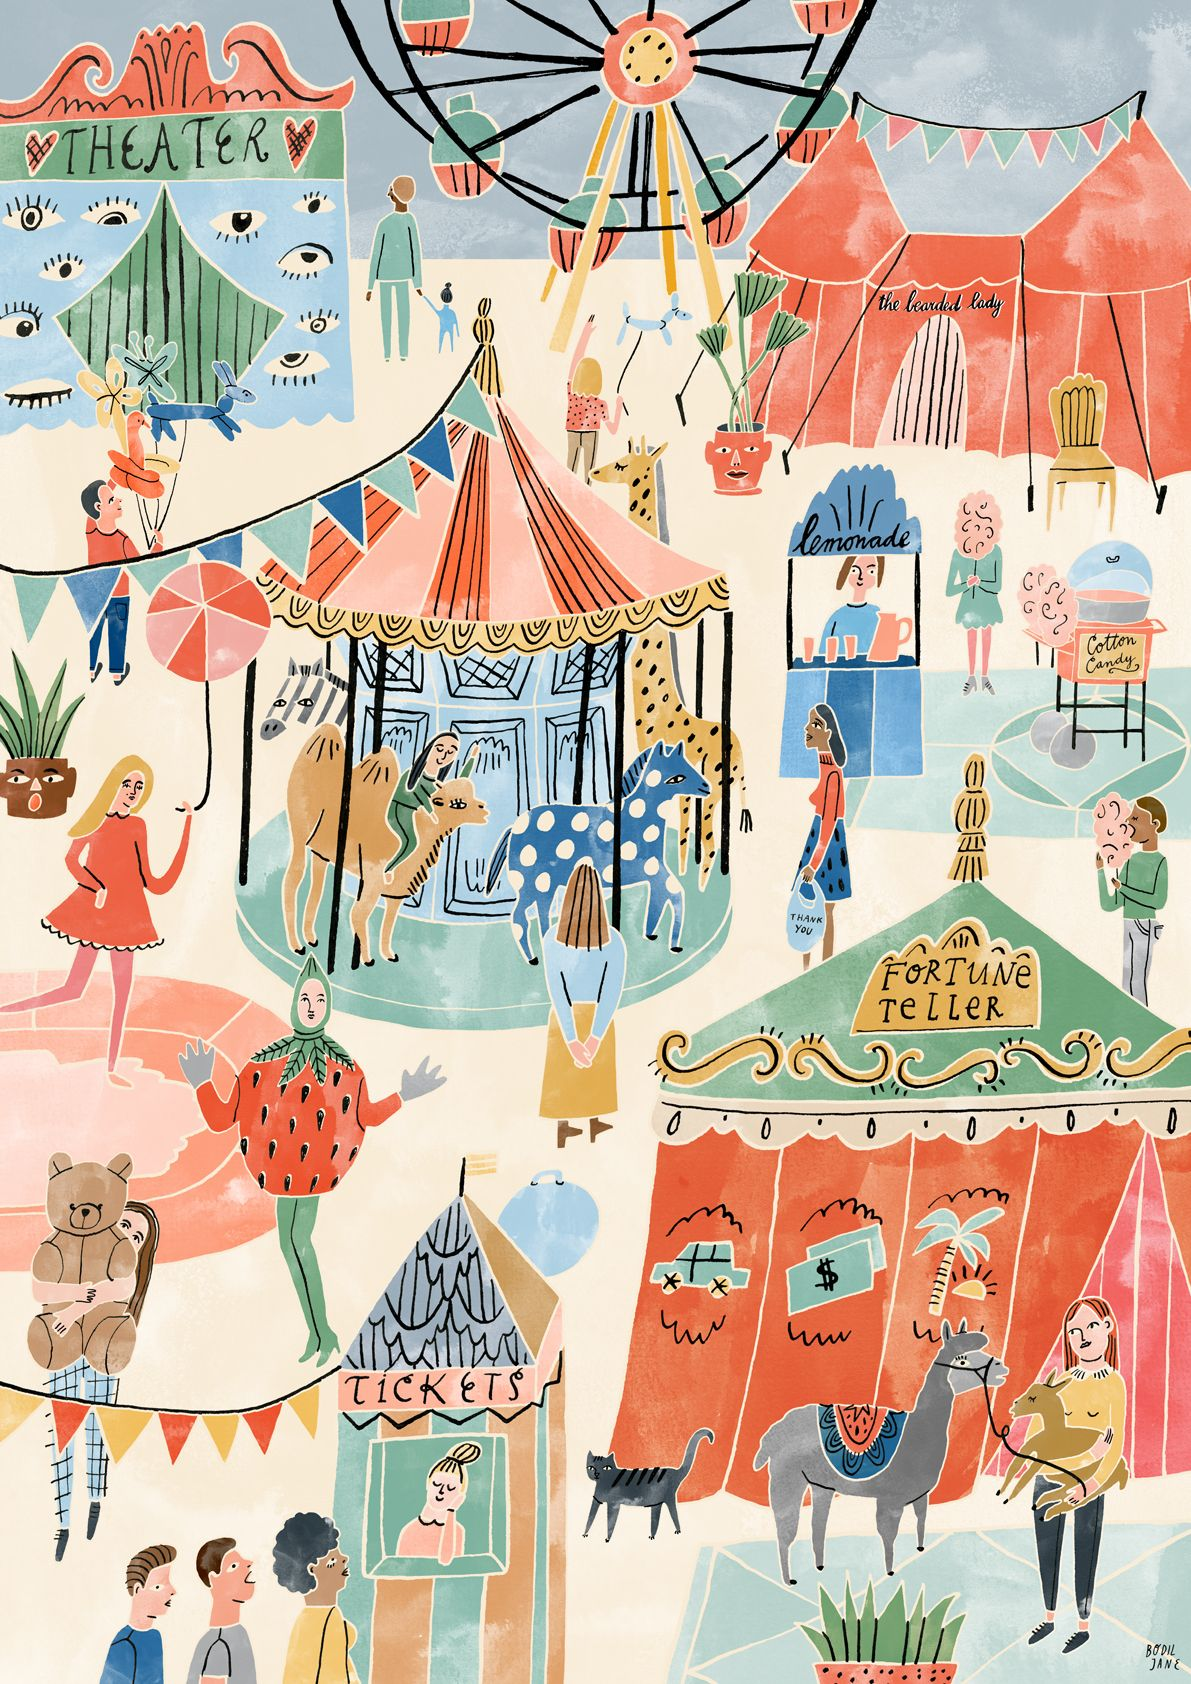 Poster To the Fair OHMYHOME Children illustration Pinterest